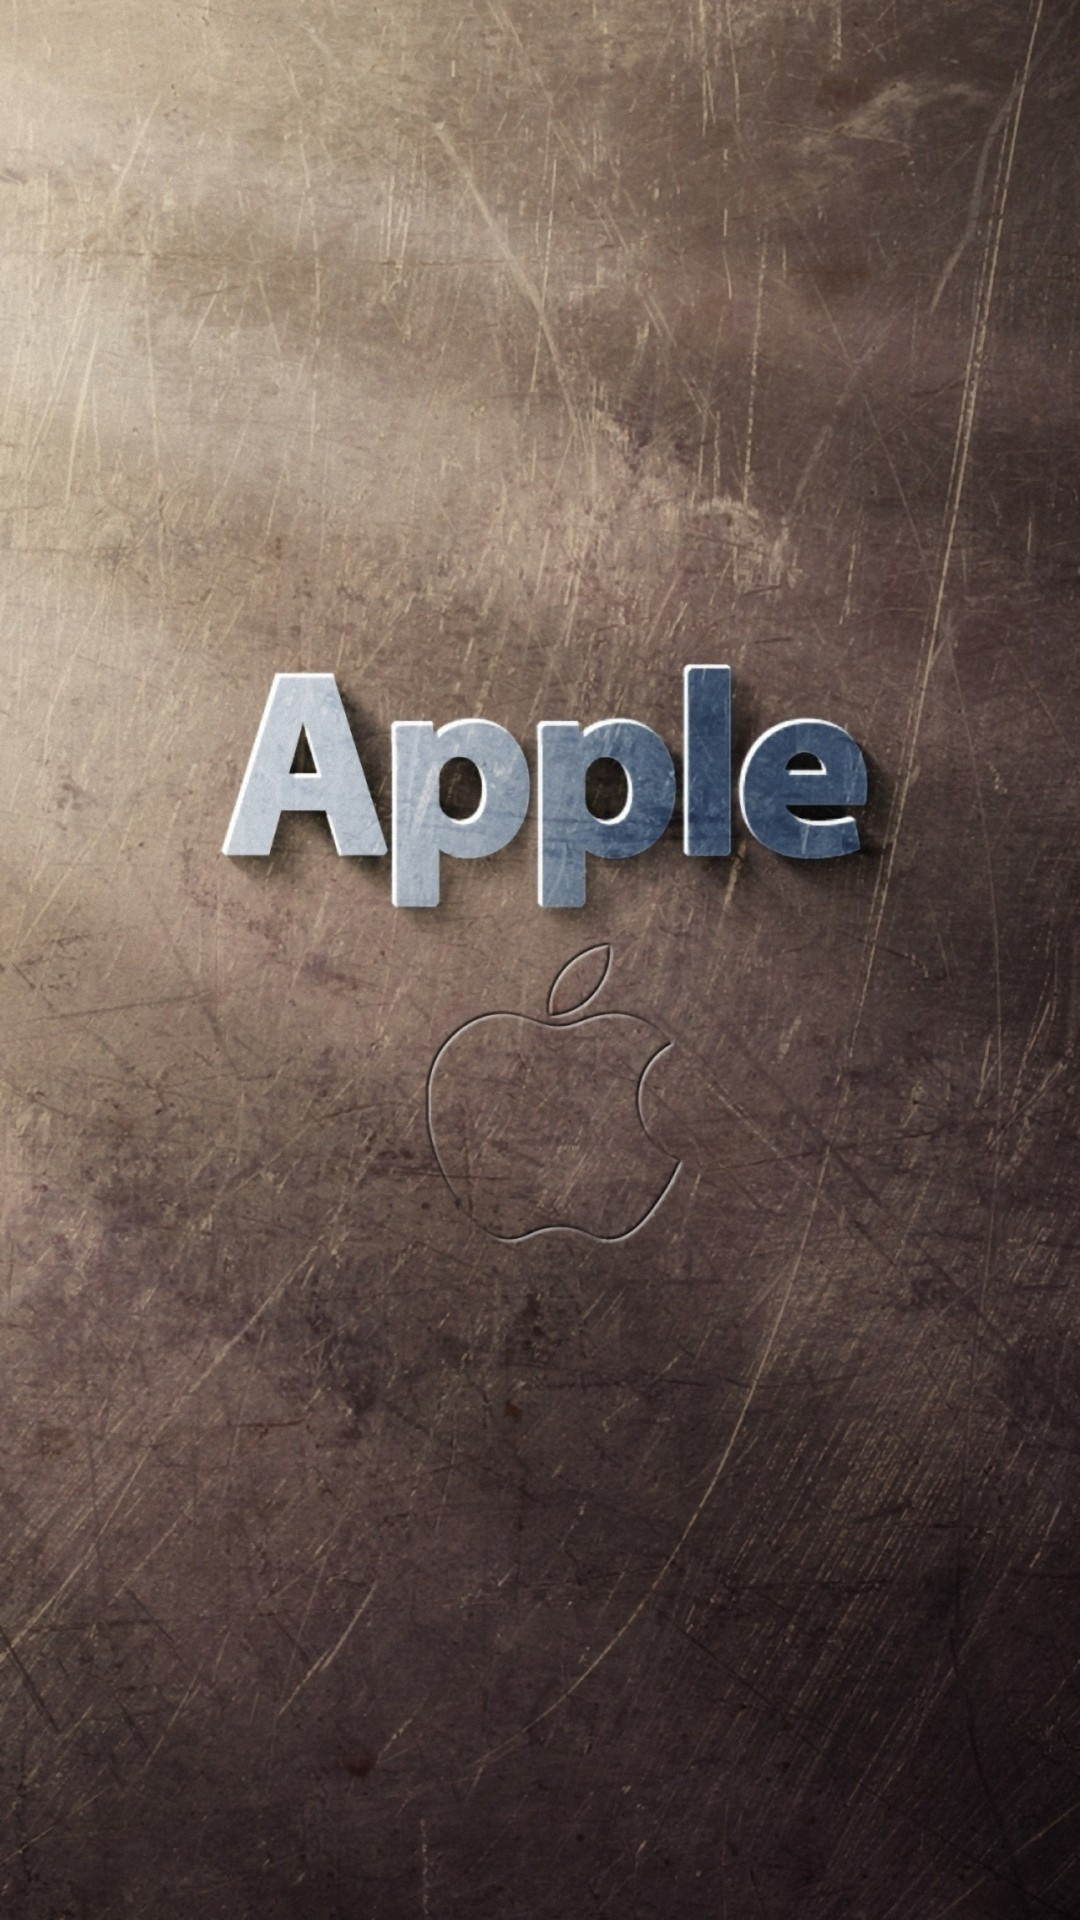 free apple logo background for iphone hd wallpapers background photos tablet amazing high definition best wallpaper ever wallpaper for iphone free 1080x1920